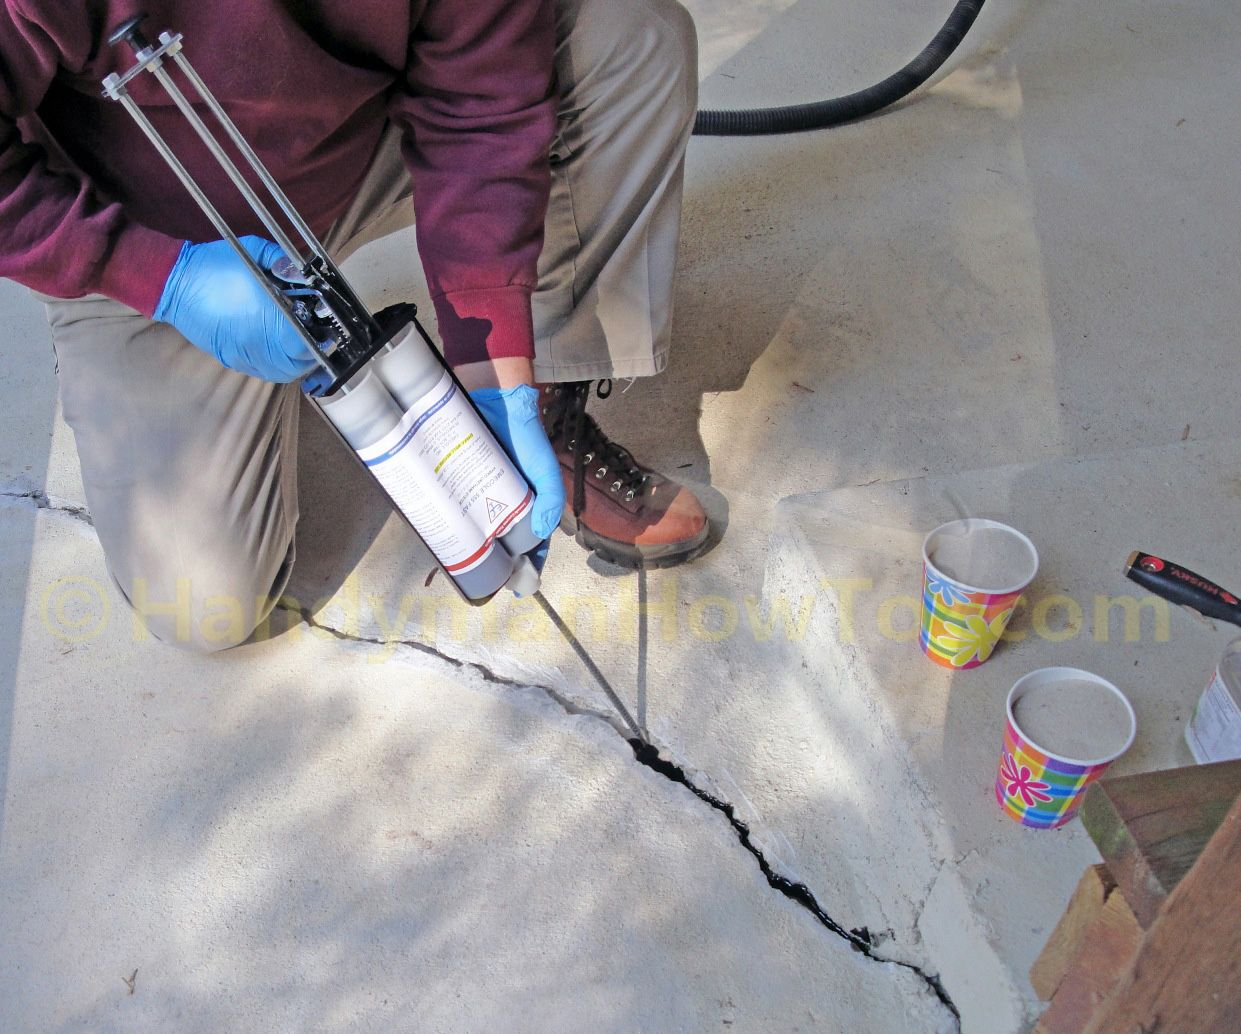 Concrete Slab Crack Repair: How To Repair A Badly Cracked Concrete Patio  Slab With Emecole 555 For A Permanent Structural Bond.